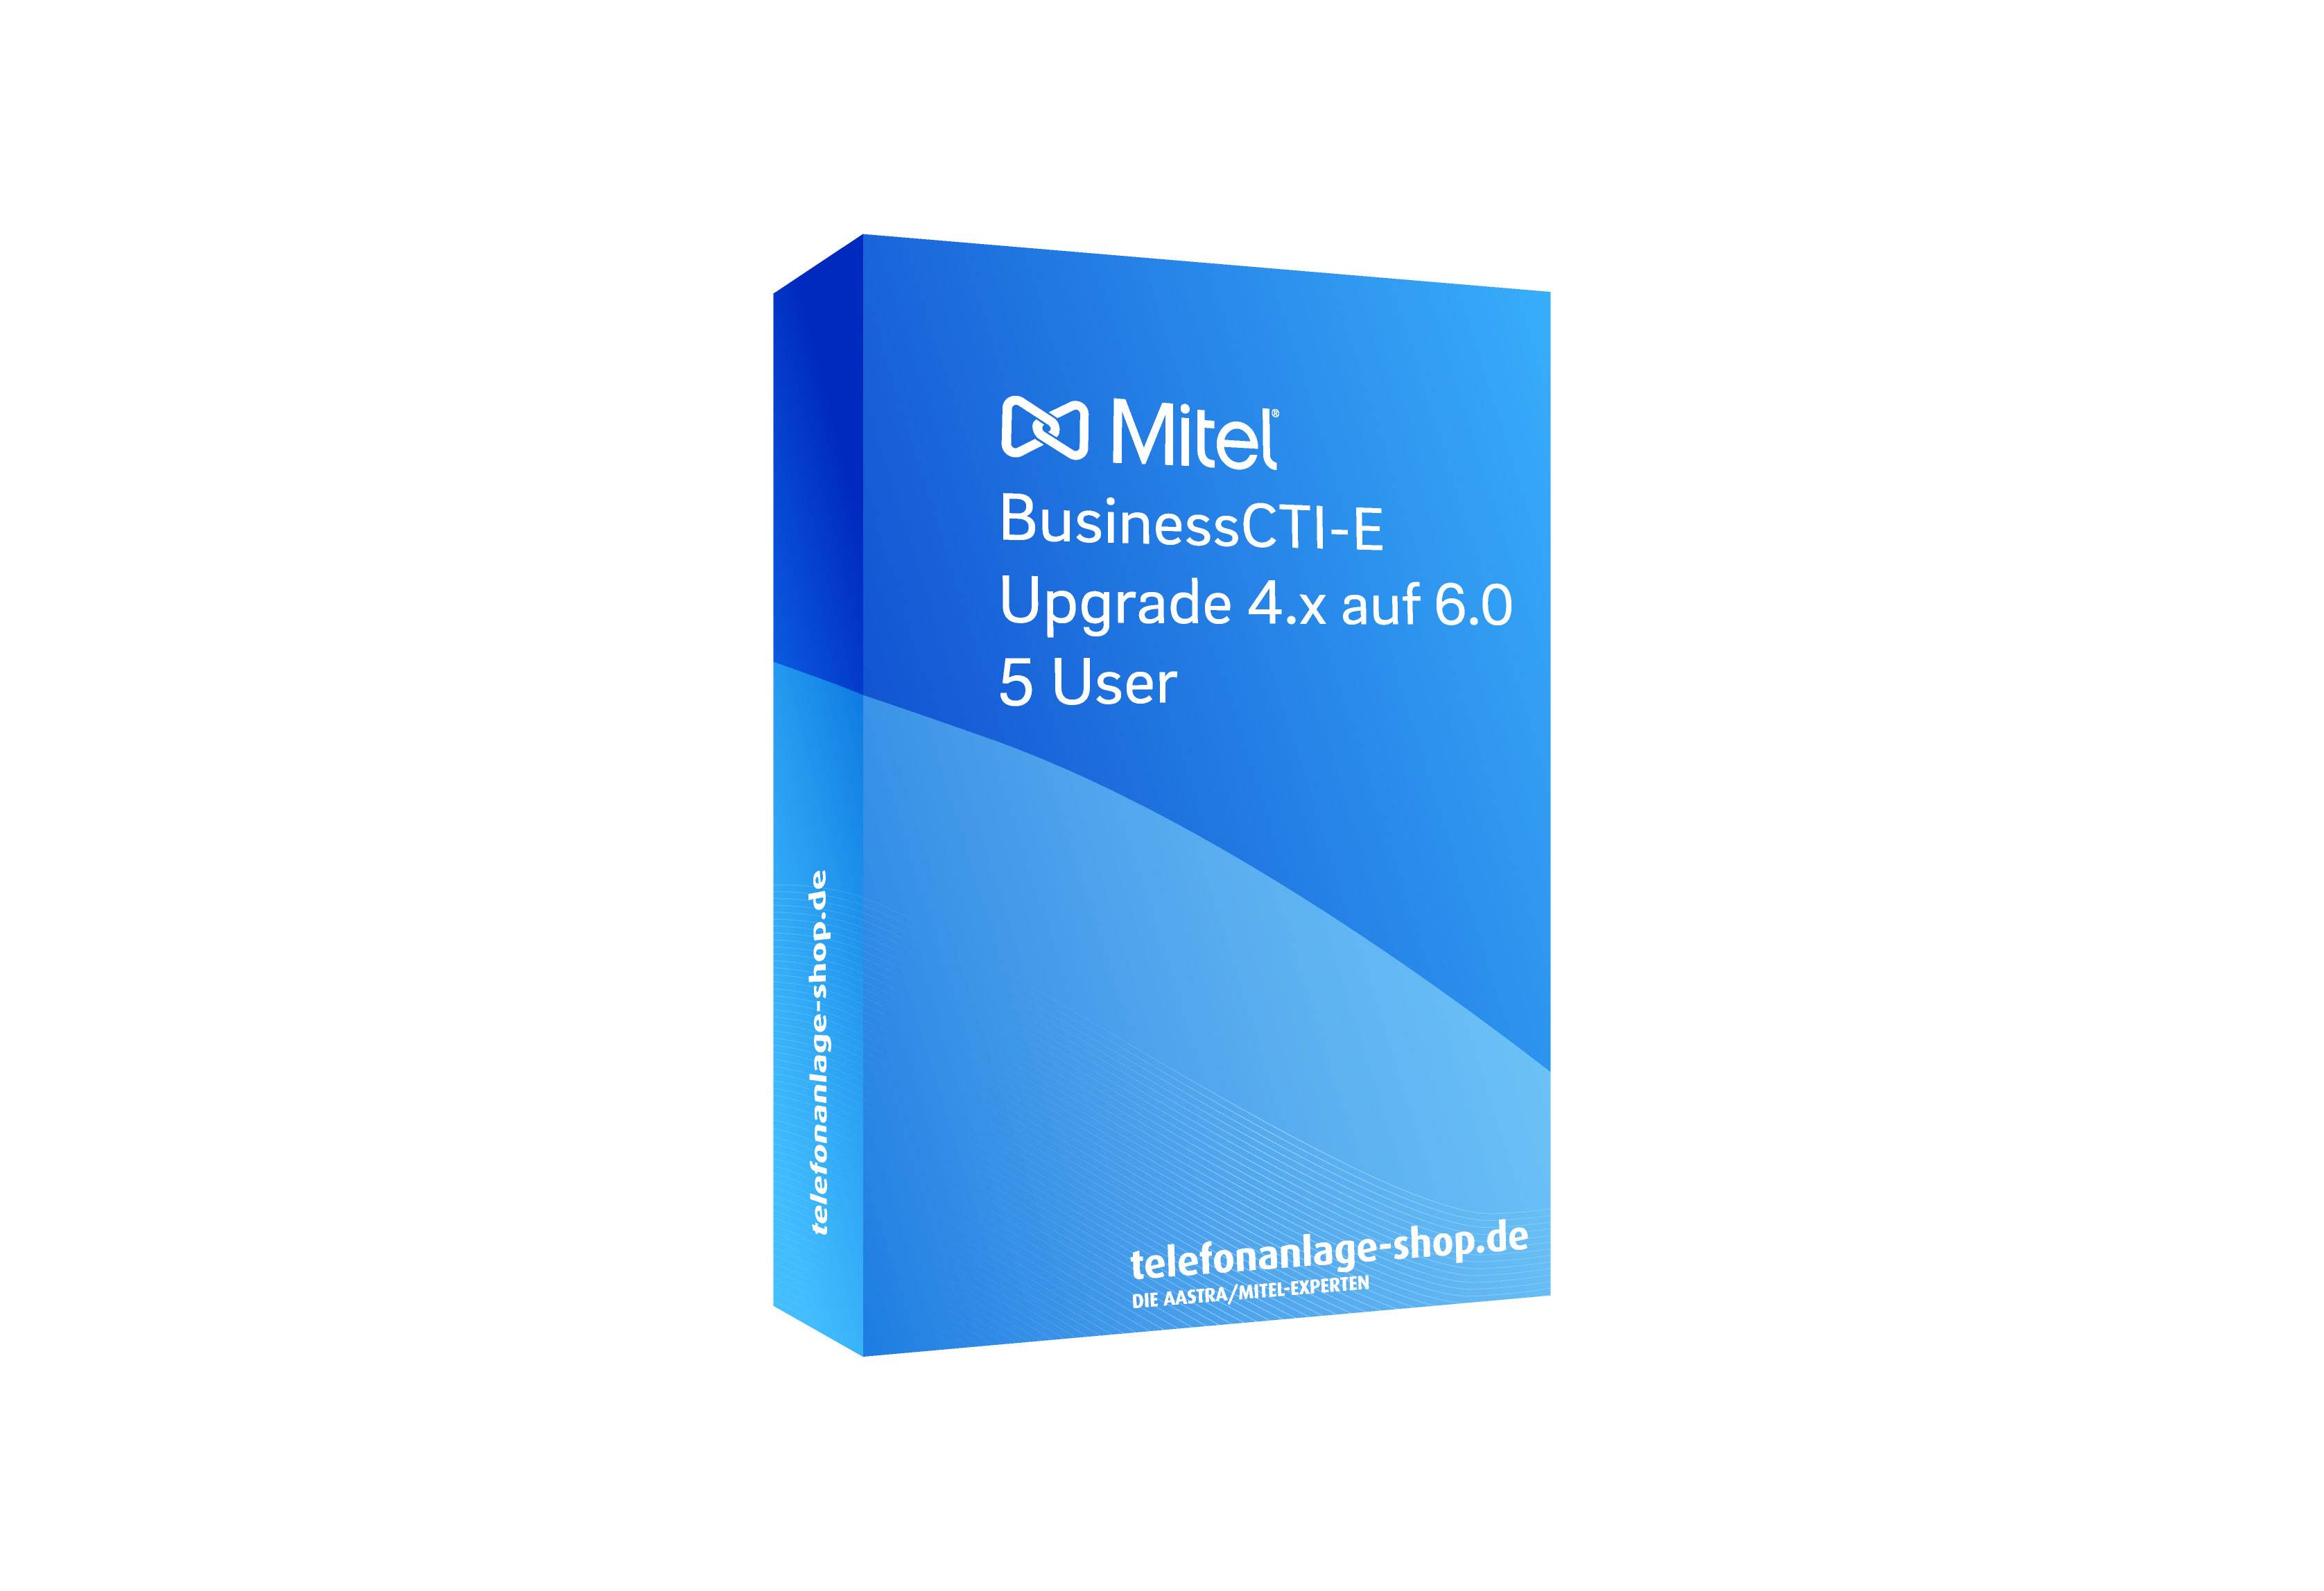 Produktbild - Mitel BusinessCTI Enterprise Upgrade 4.x auf 6.0 5 User